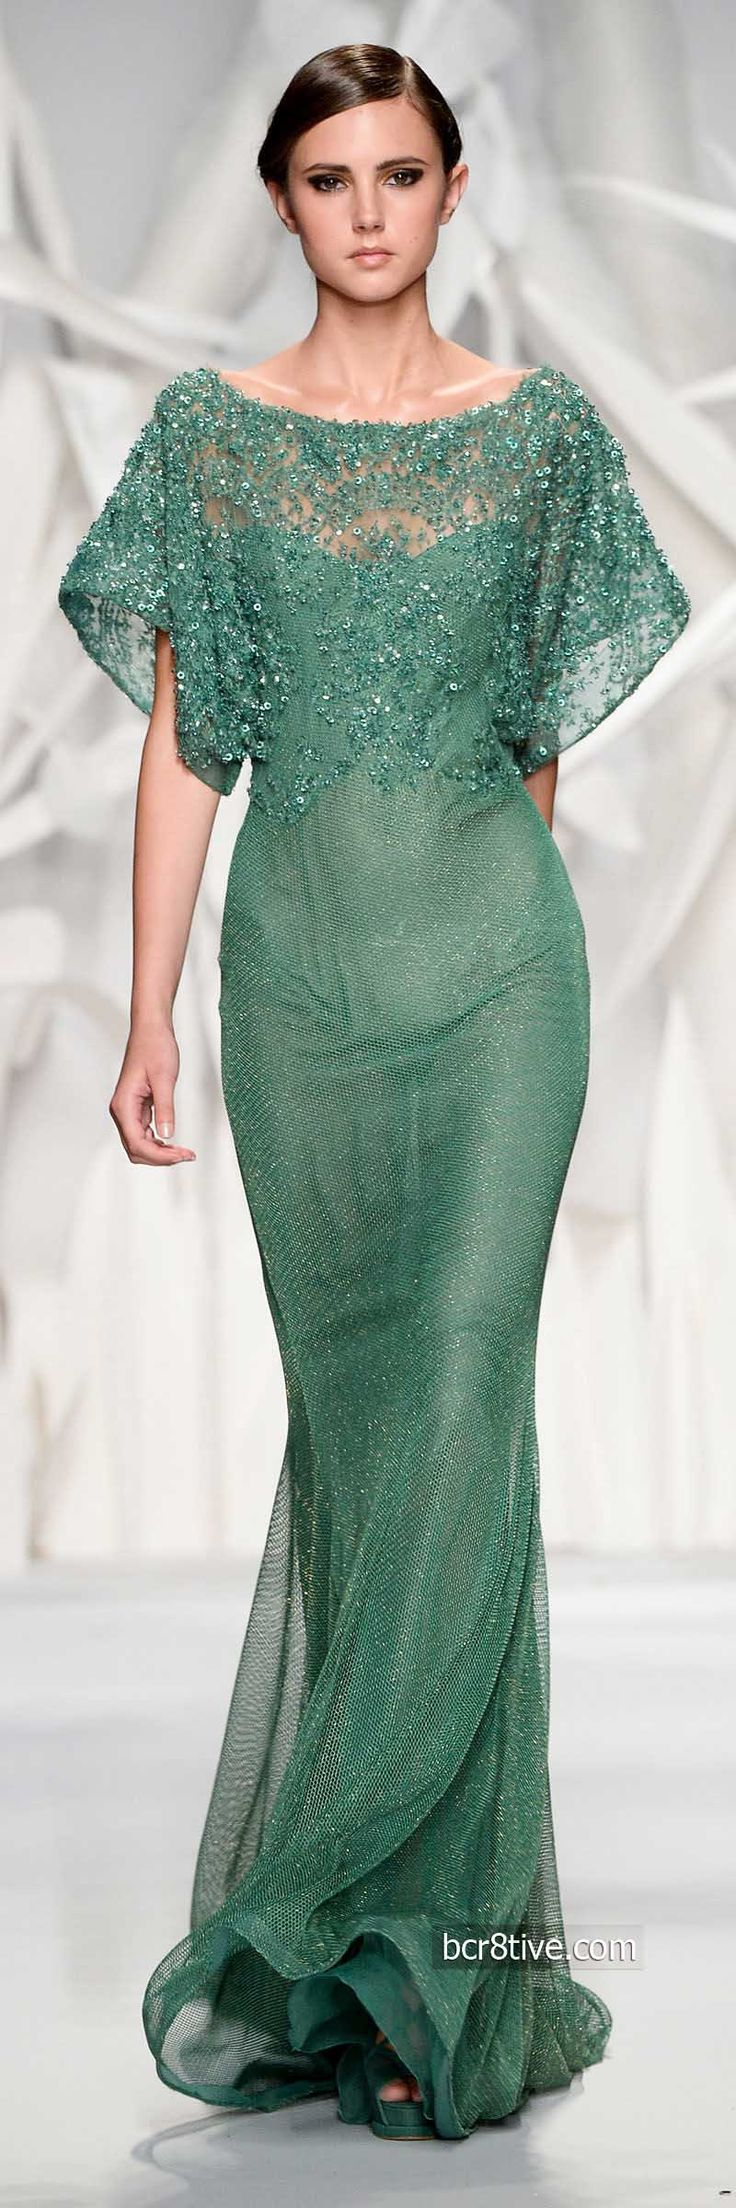 Abed Mahfouz Fall Winter 2014 Haute Couture Frm bd: #Fashion-ivabellini